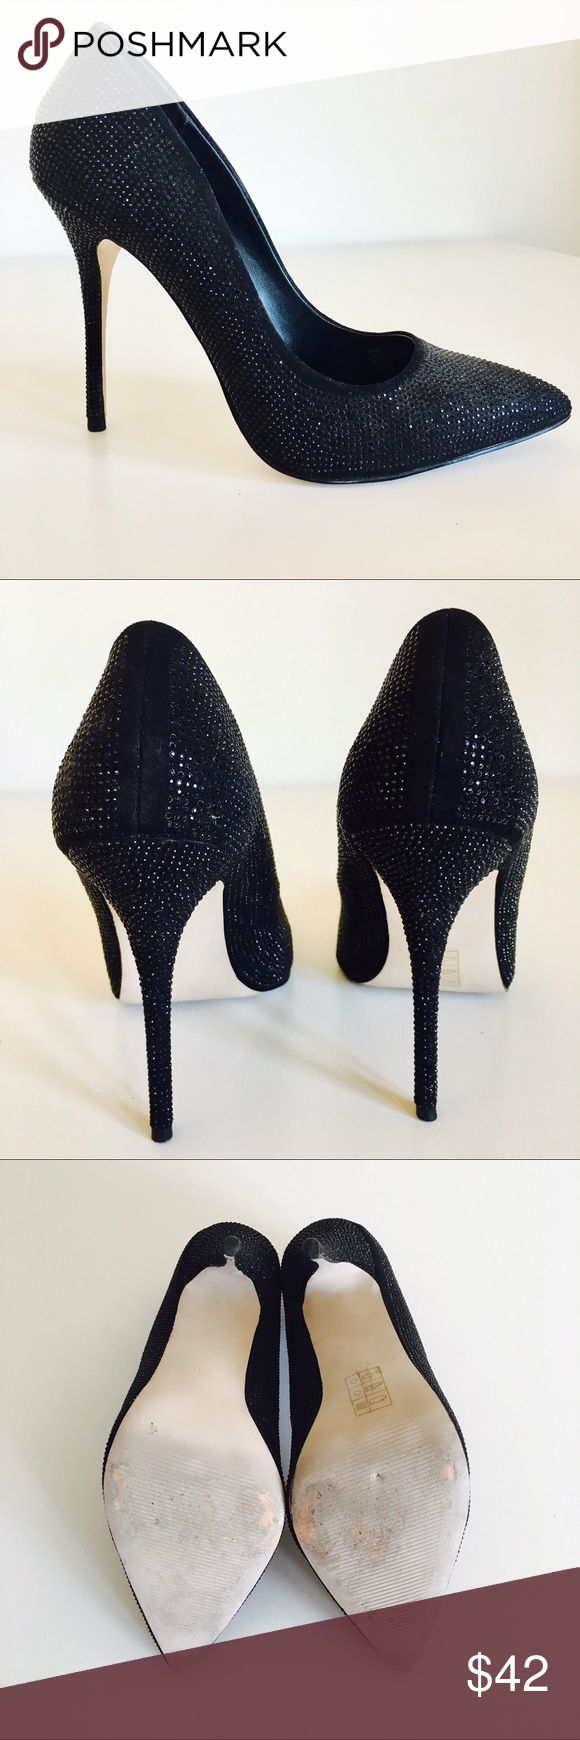 Carvers Kurt Geiger Embellished Stiletto Stunning and sexy black stiletto by Kurt Geiger for Carvela. In excellent condition. Gives the most flattering leg. Has just the right amount of sparkle yet still very sophisticated. Size is 9 / 40 Carvela Kurt Gieger Shoes Heels